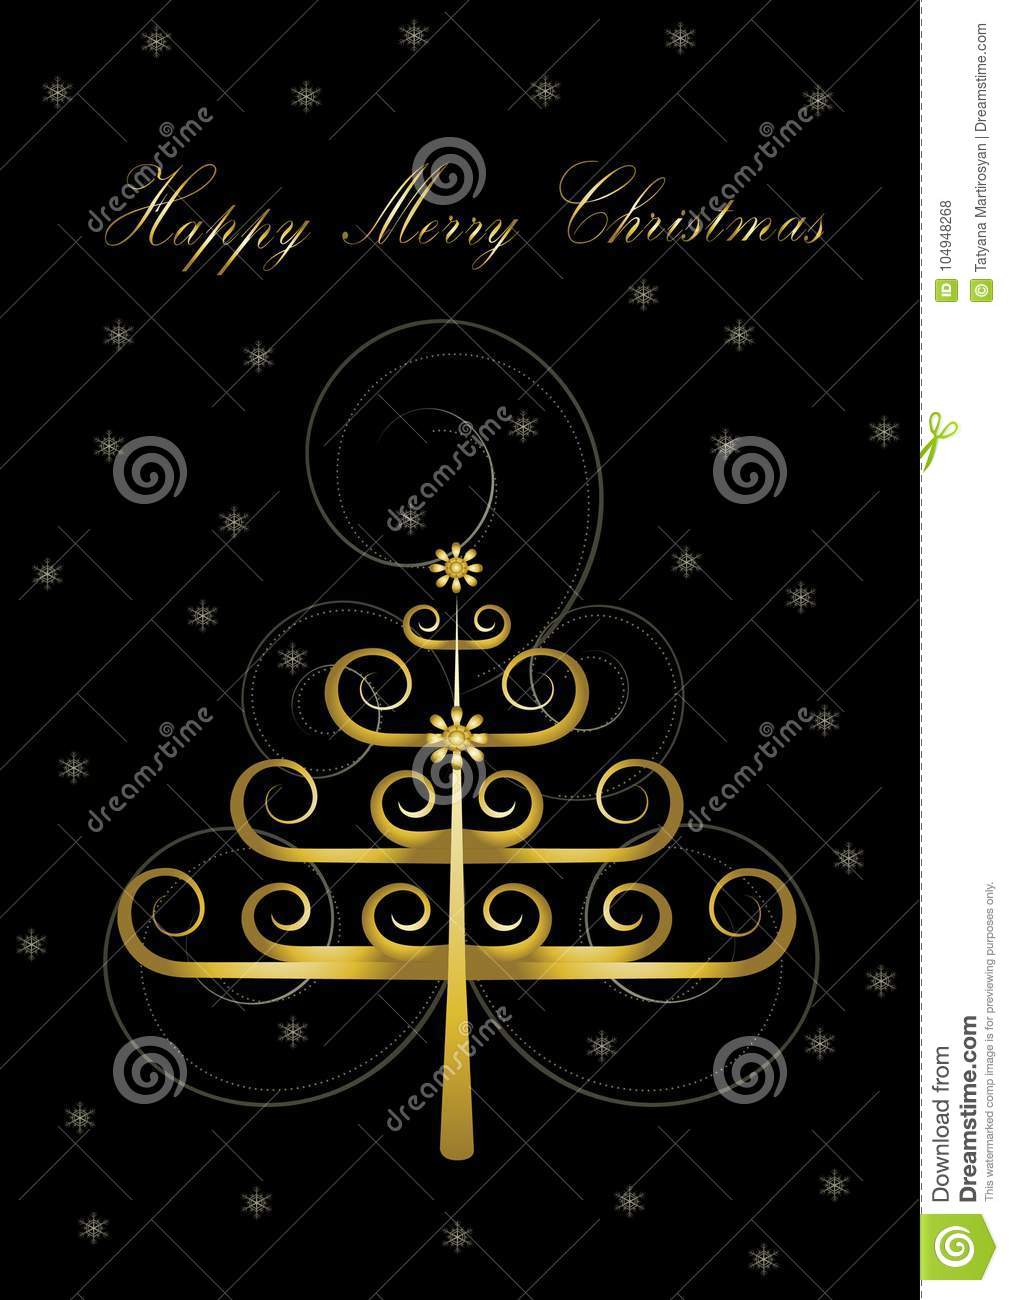 Greeting Card With Original Golden Christmas Tree And Greetings